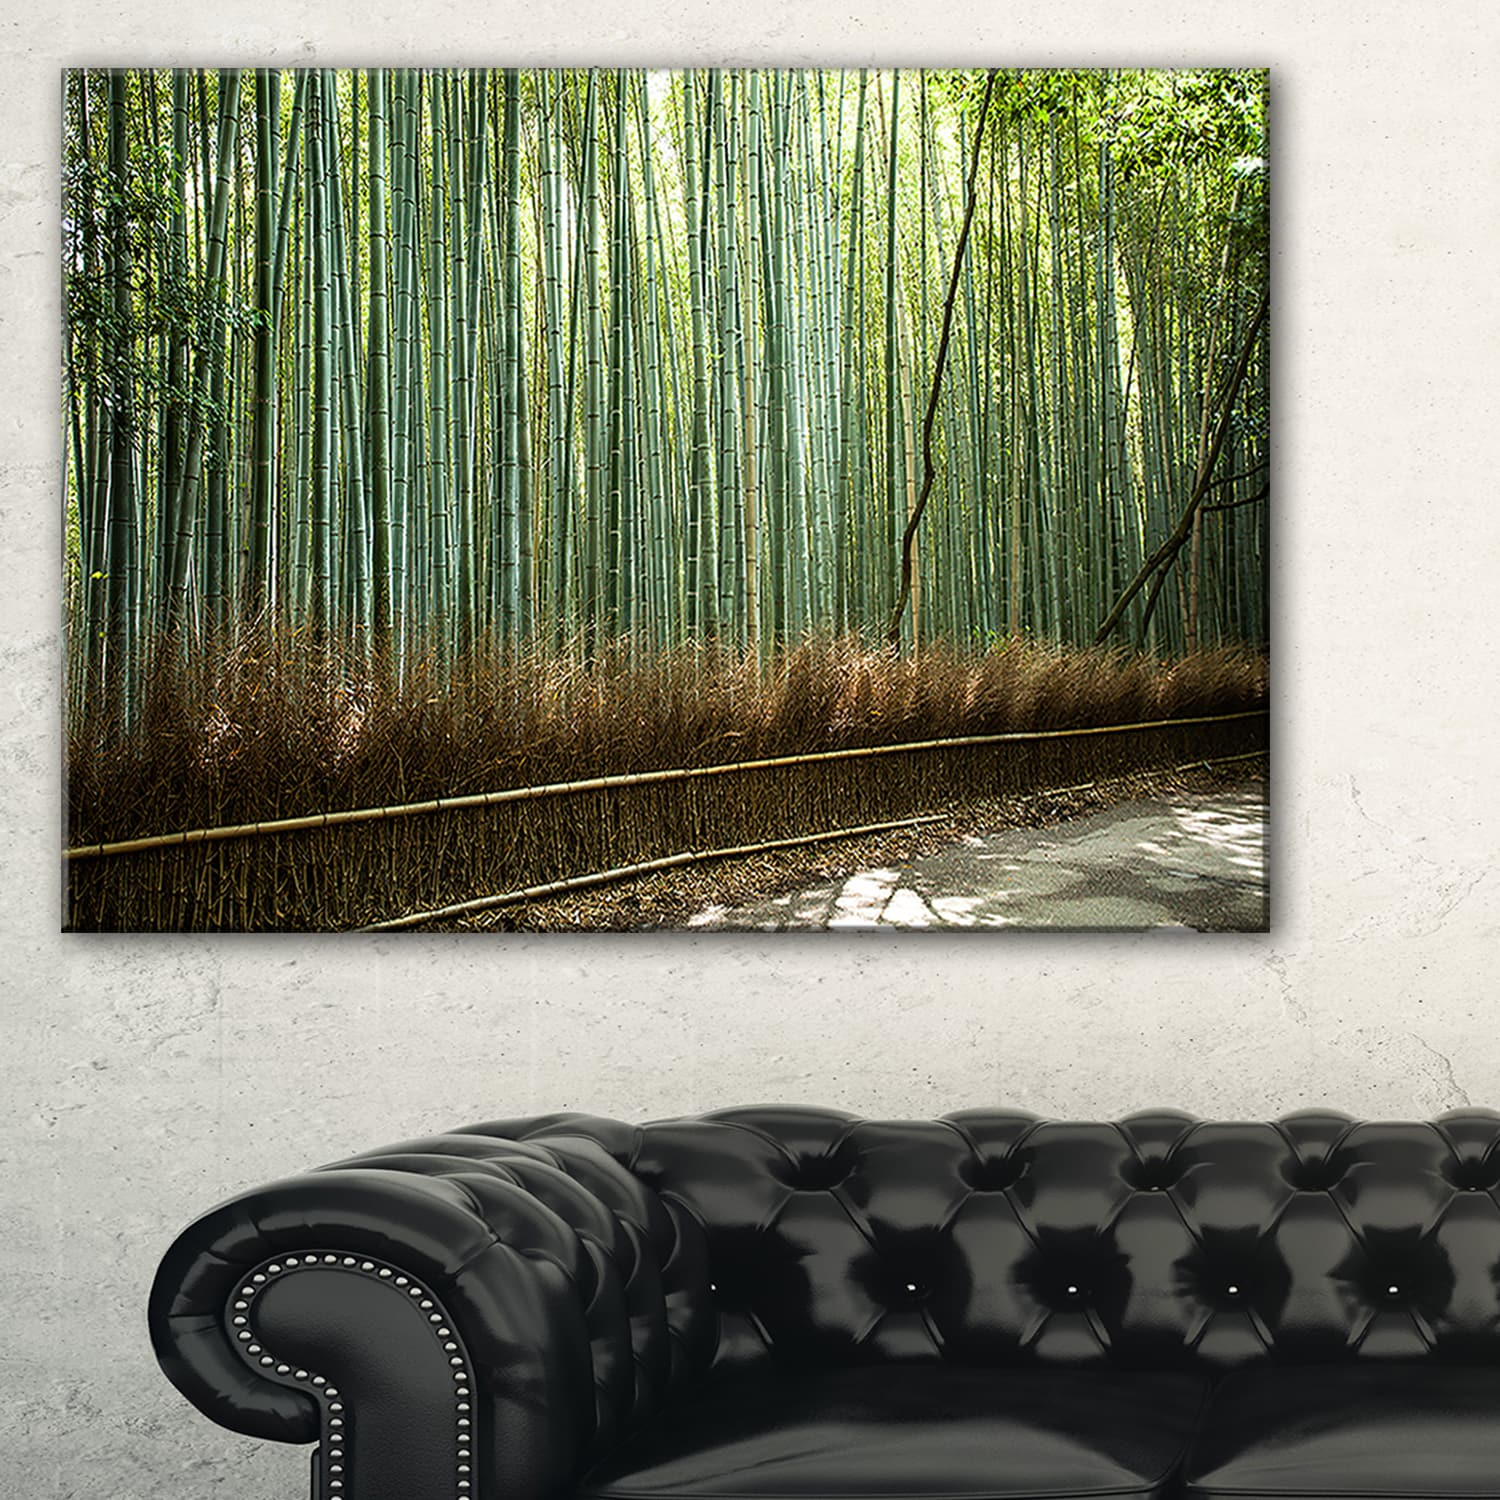 Beautiful-View-of-Bamboo-Forest-Forest-Canvas-Wall-Art-Mini thumbnail 6